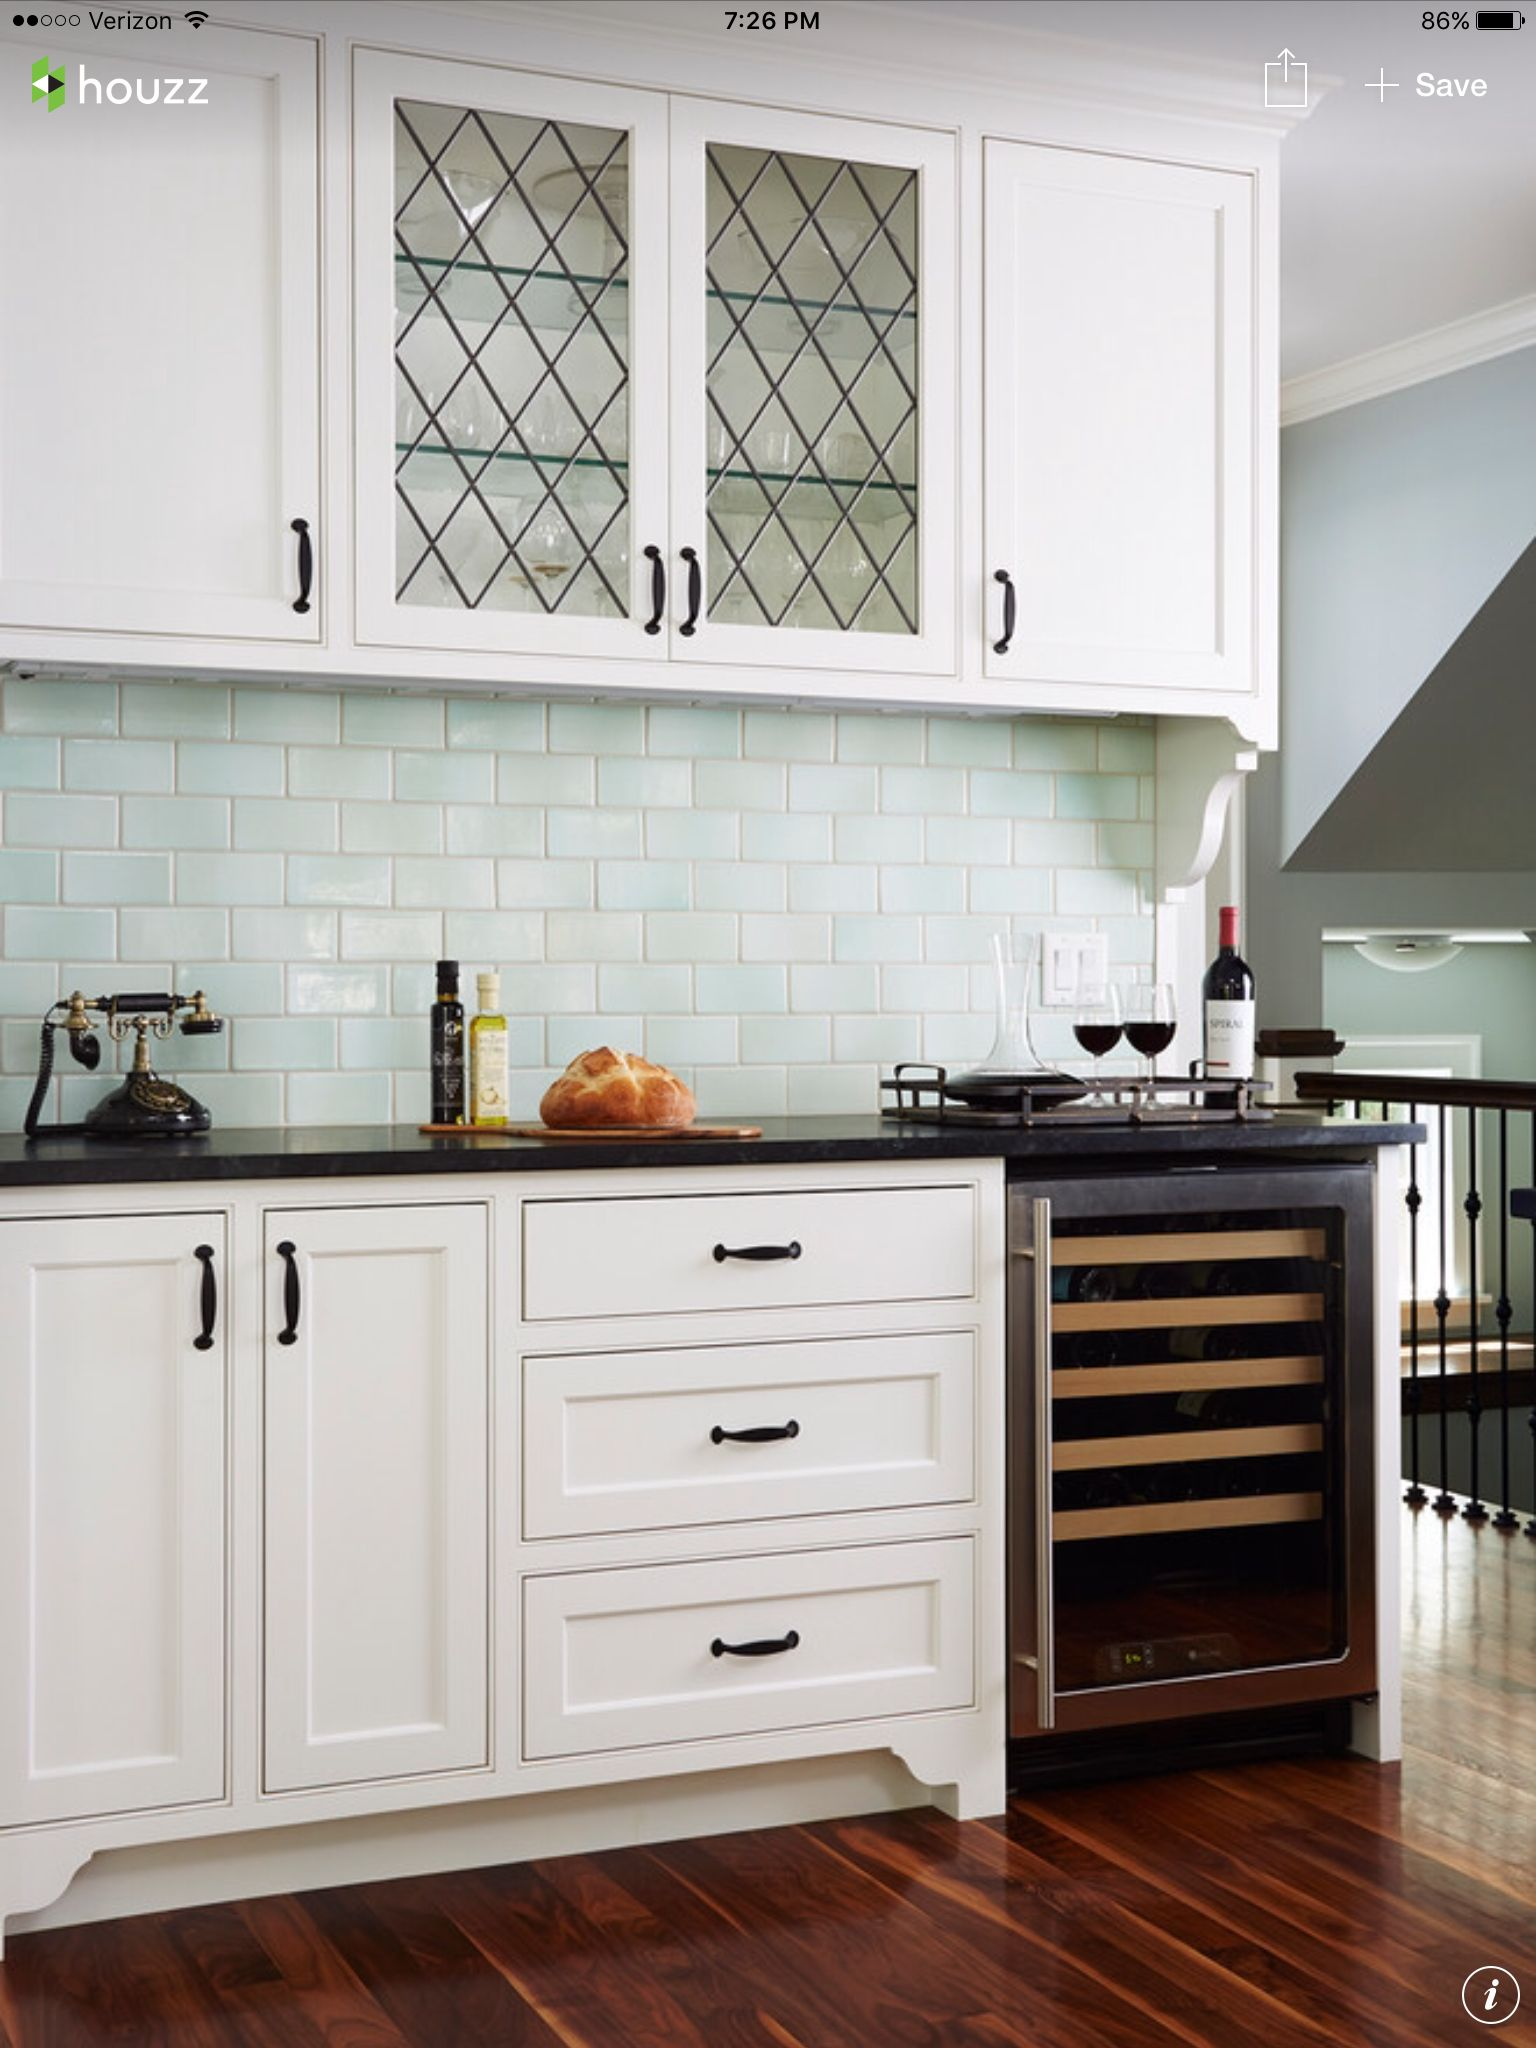 Kitchen soap stone tile hardware all coordinated perfectly with